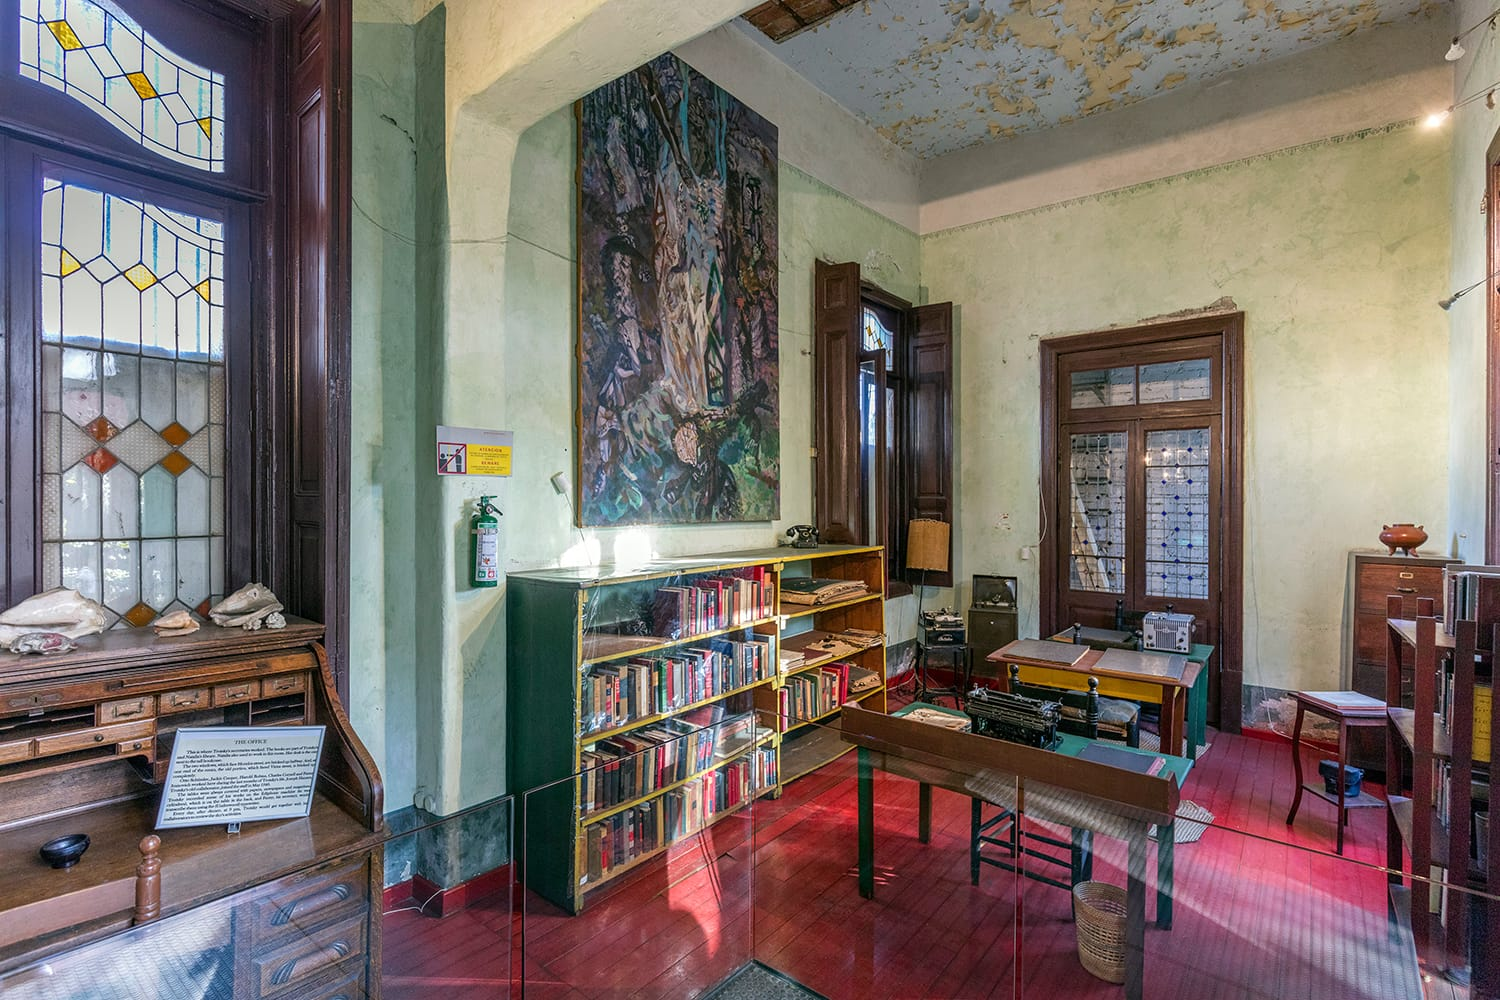 Inside the Leon Trotsky Museum in Mexico City